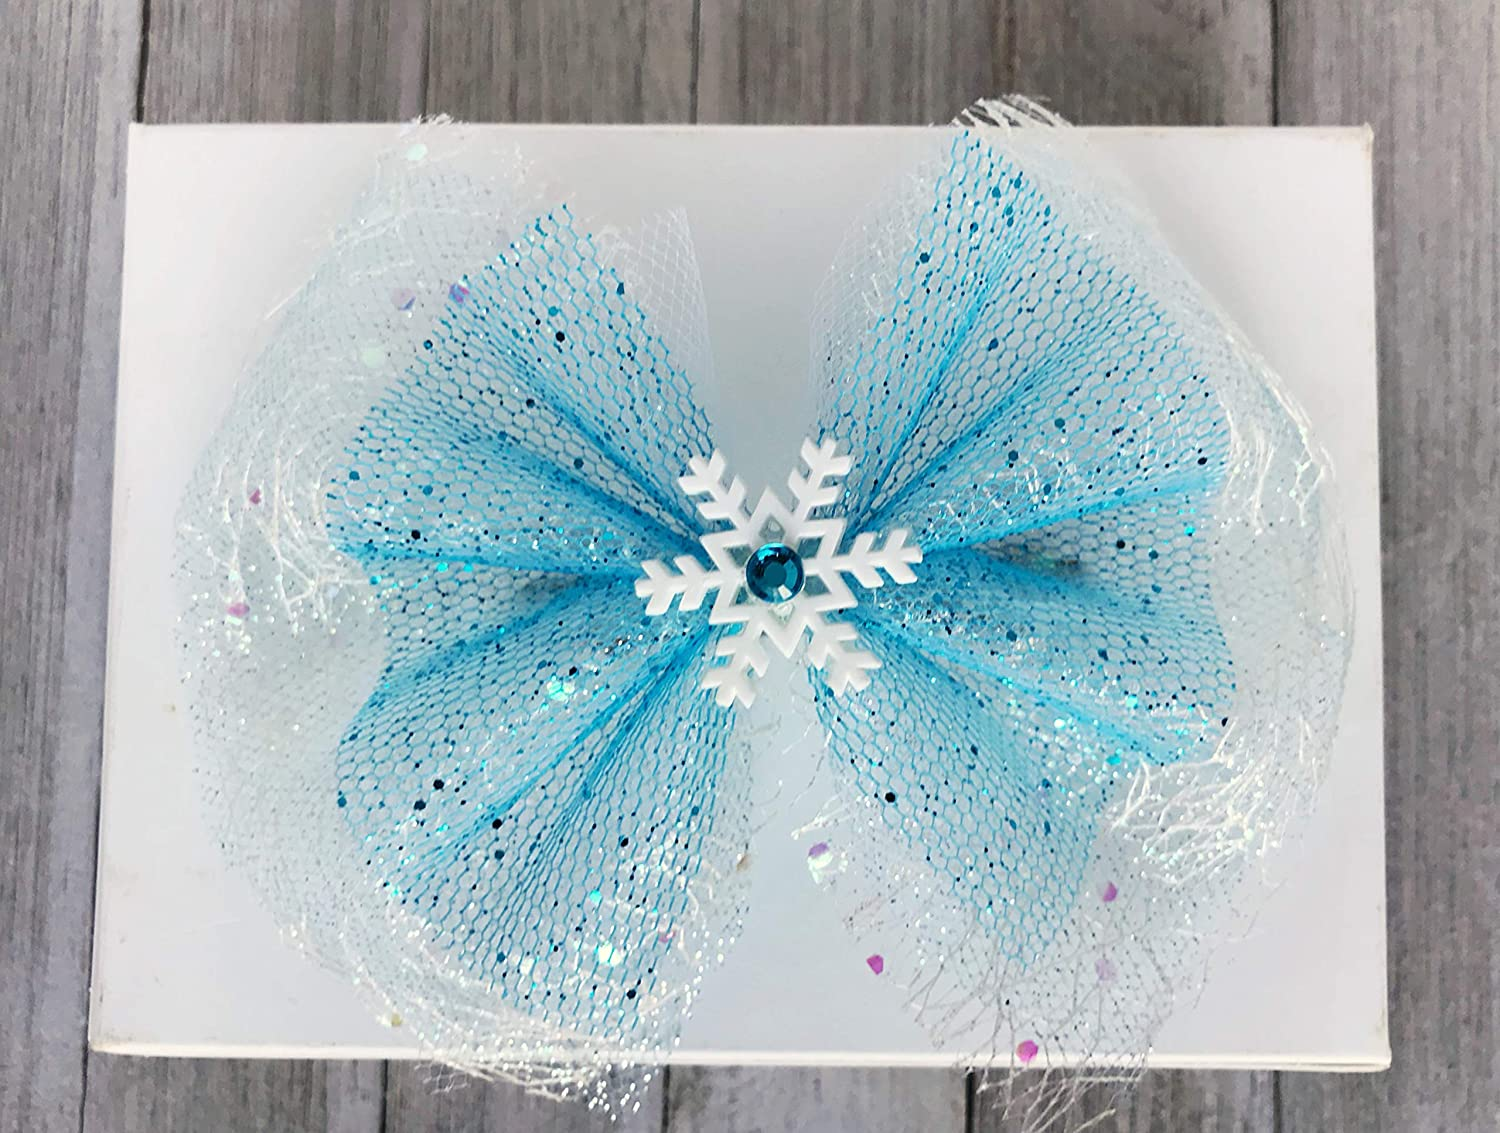 Teal Blue Snowflake Hair Bow or Headband Set,Winter Over the Top Bows,Snowflake Hairbow,Stacked Baby Headbands,Big Bows,Baby Girl Headband